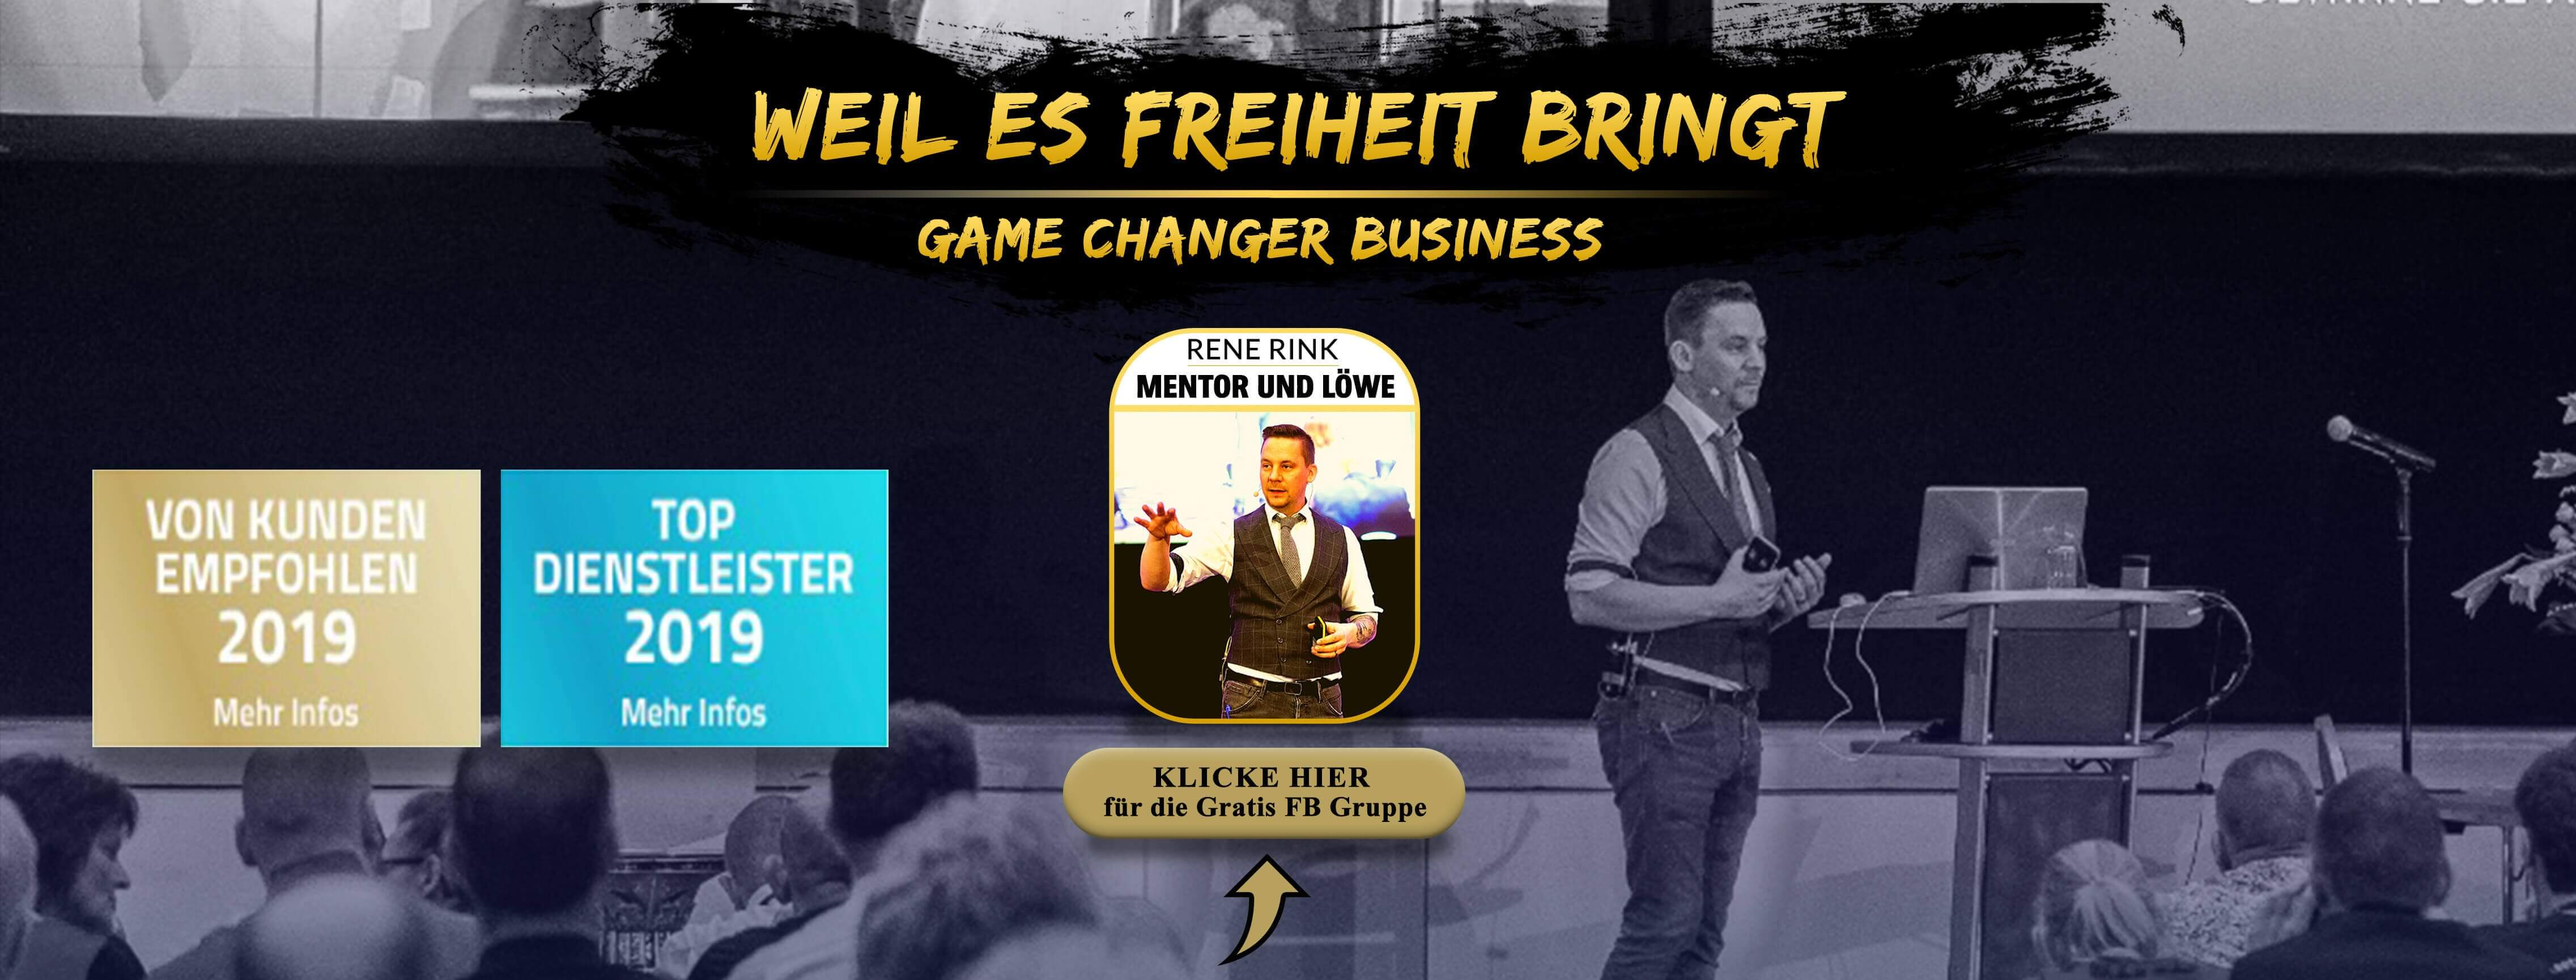 GAME CHANGER Marketing mit René Rink